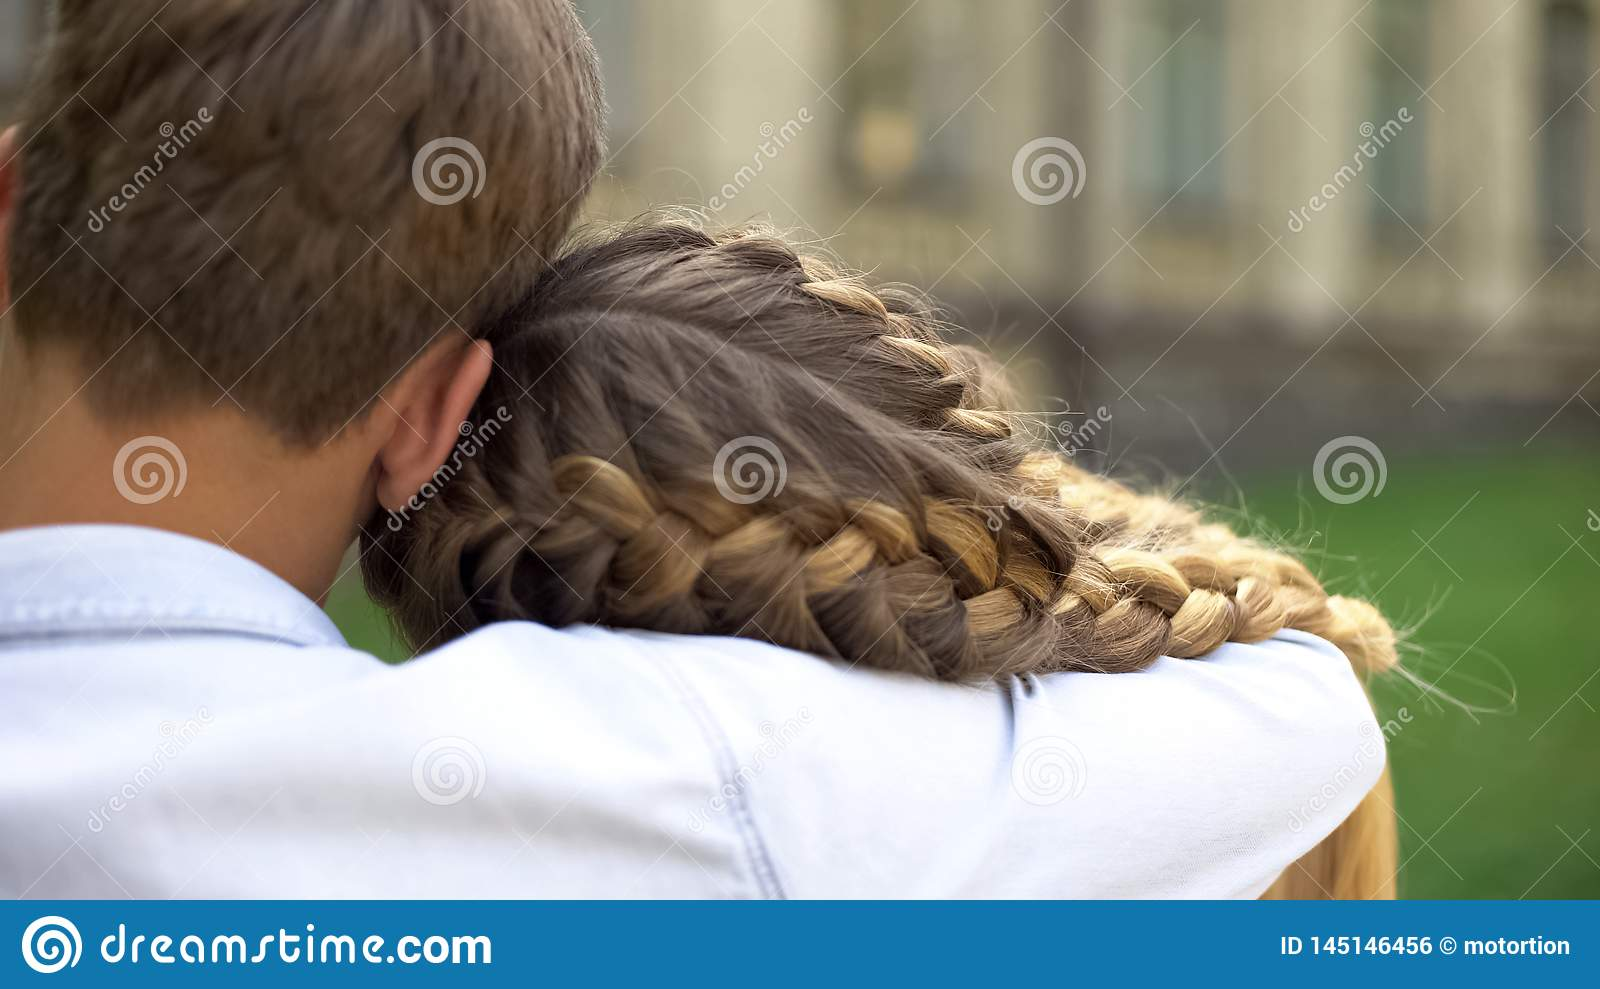 Shy Couple Of Teenagers Embracing Each Other First Love Tender Relationship Stock Photo Image Of Hold Flirting 145146456